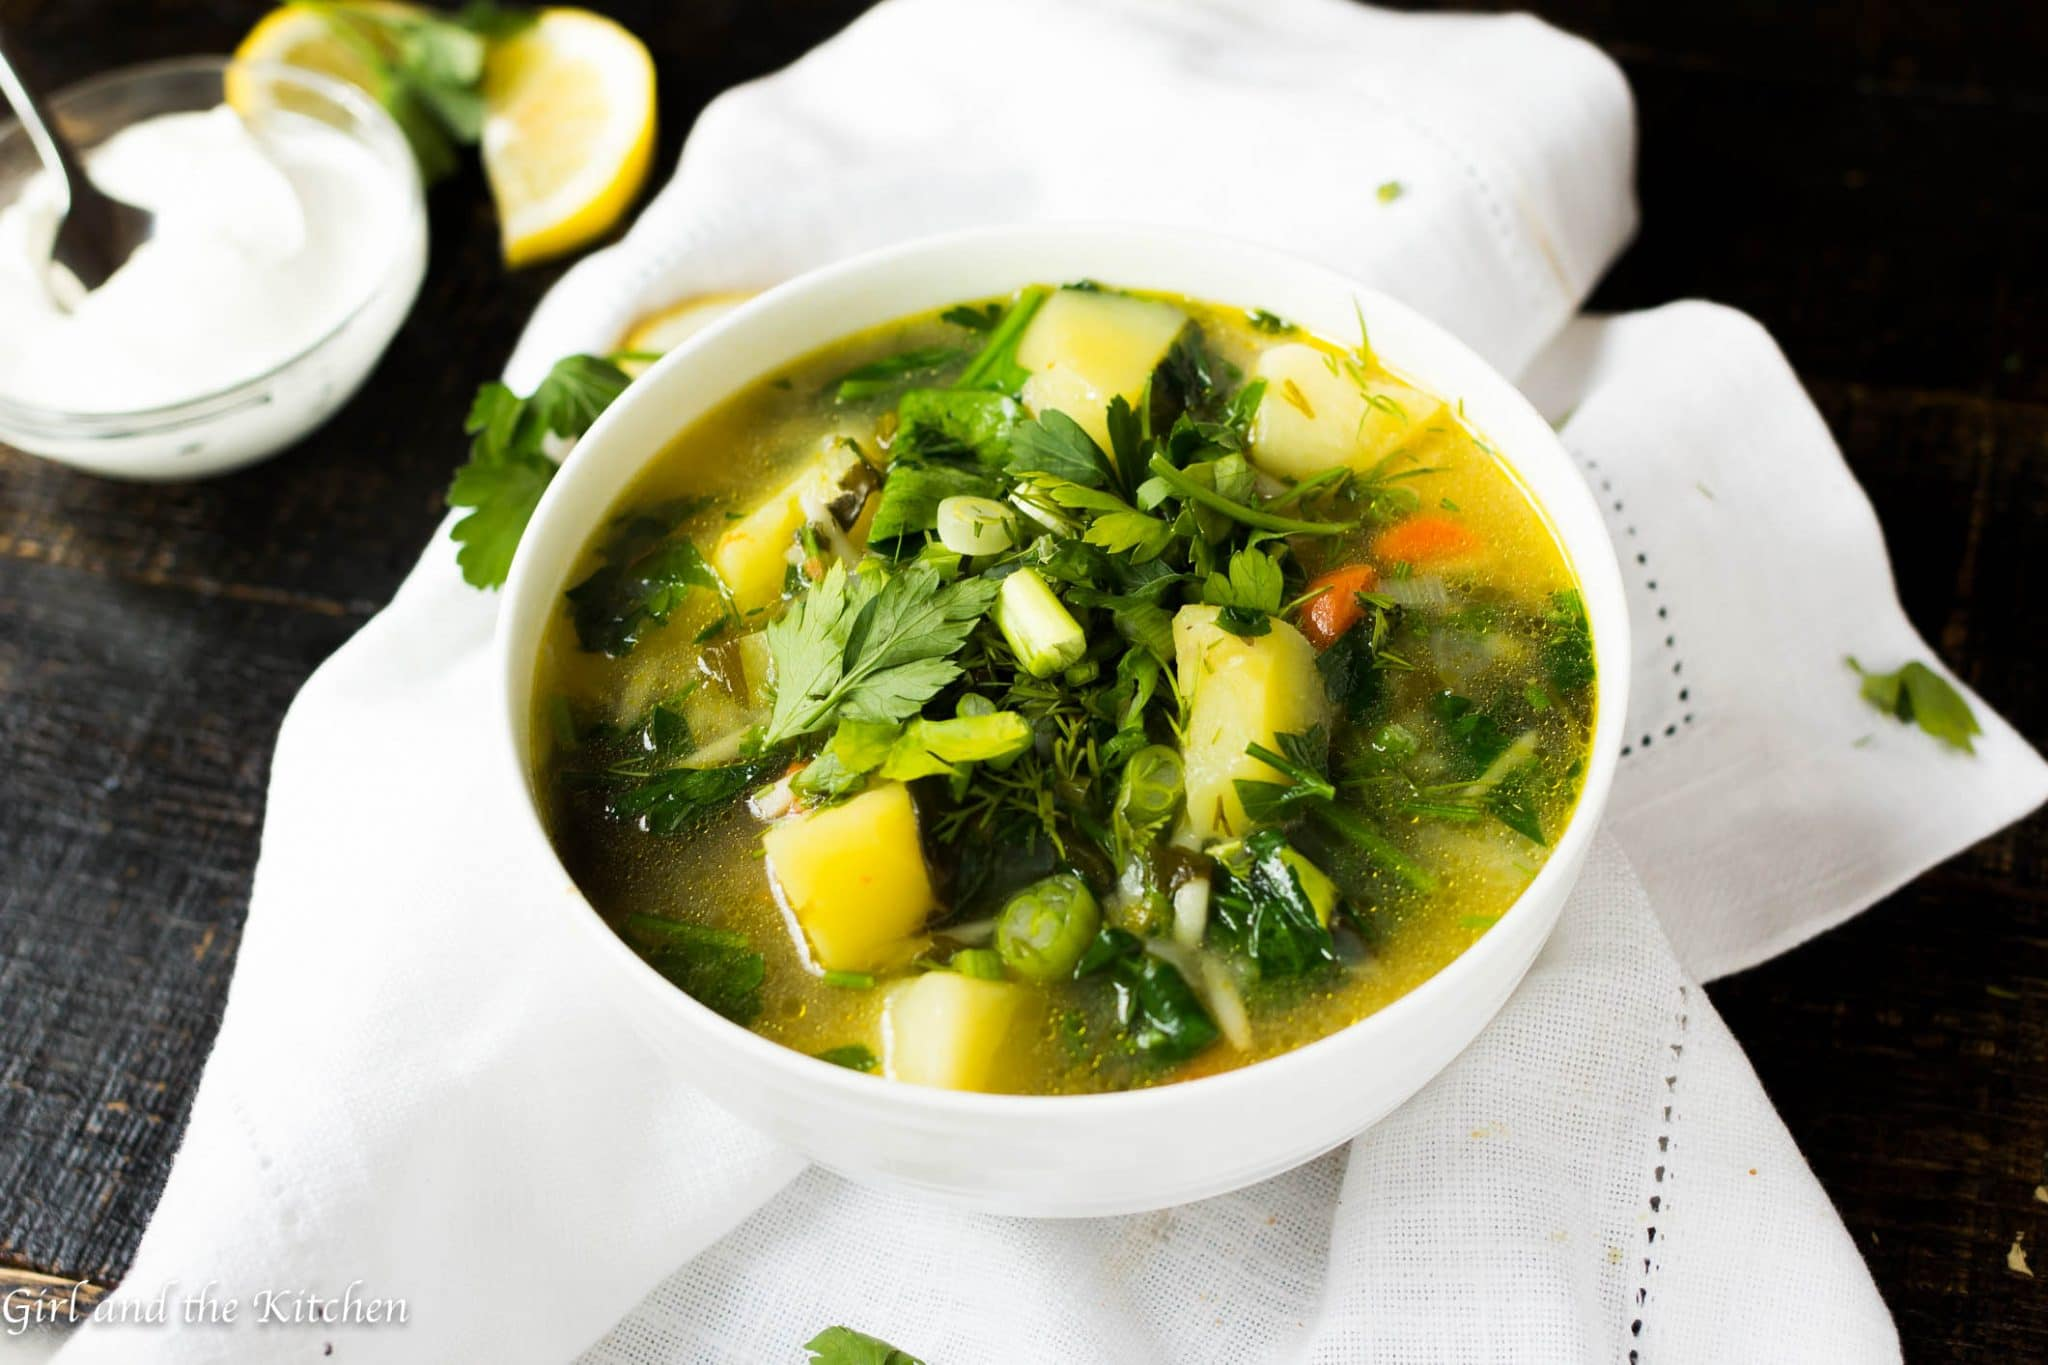 A hearty Russian style chicken soup loaded with tons of fresh herbs and veggies! Perfect for the spring time when all the fresh greens start popping up and we still need some warm comforting soup.